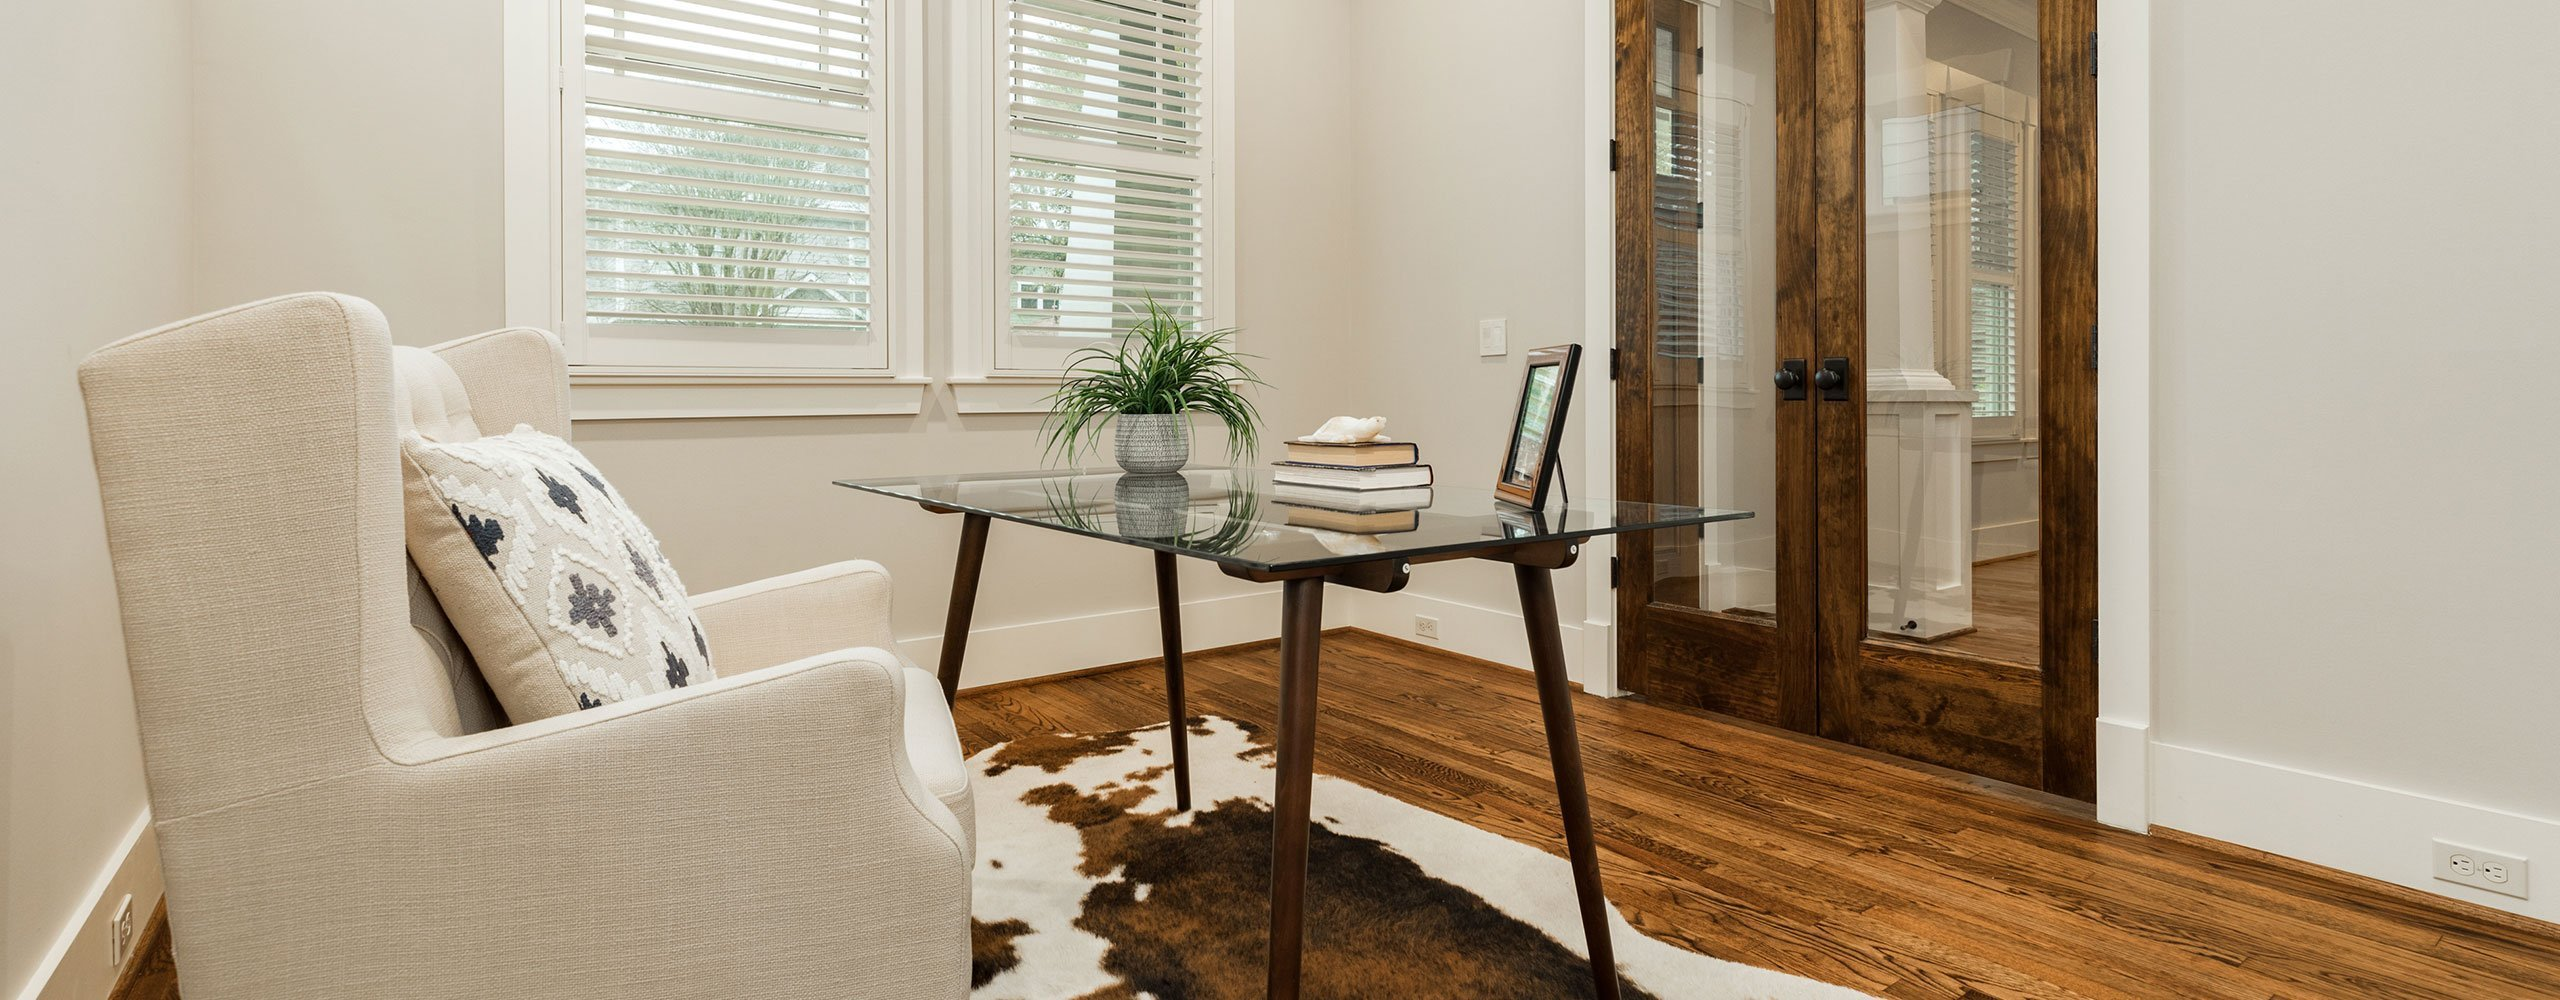 Upscale home staging services in Houston, TX